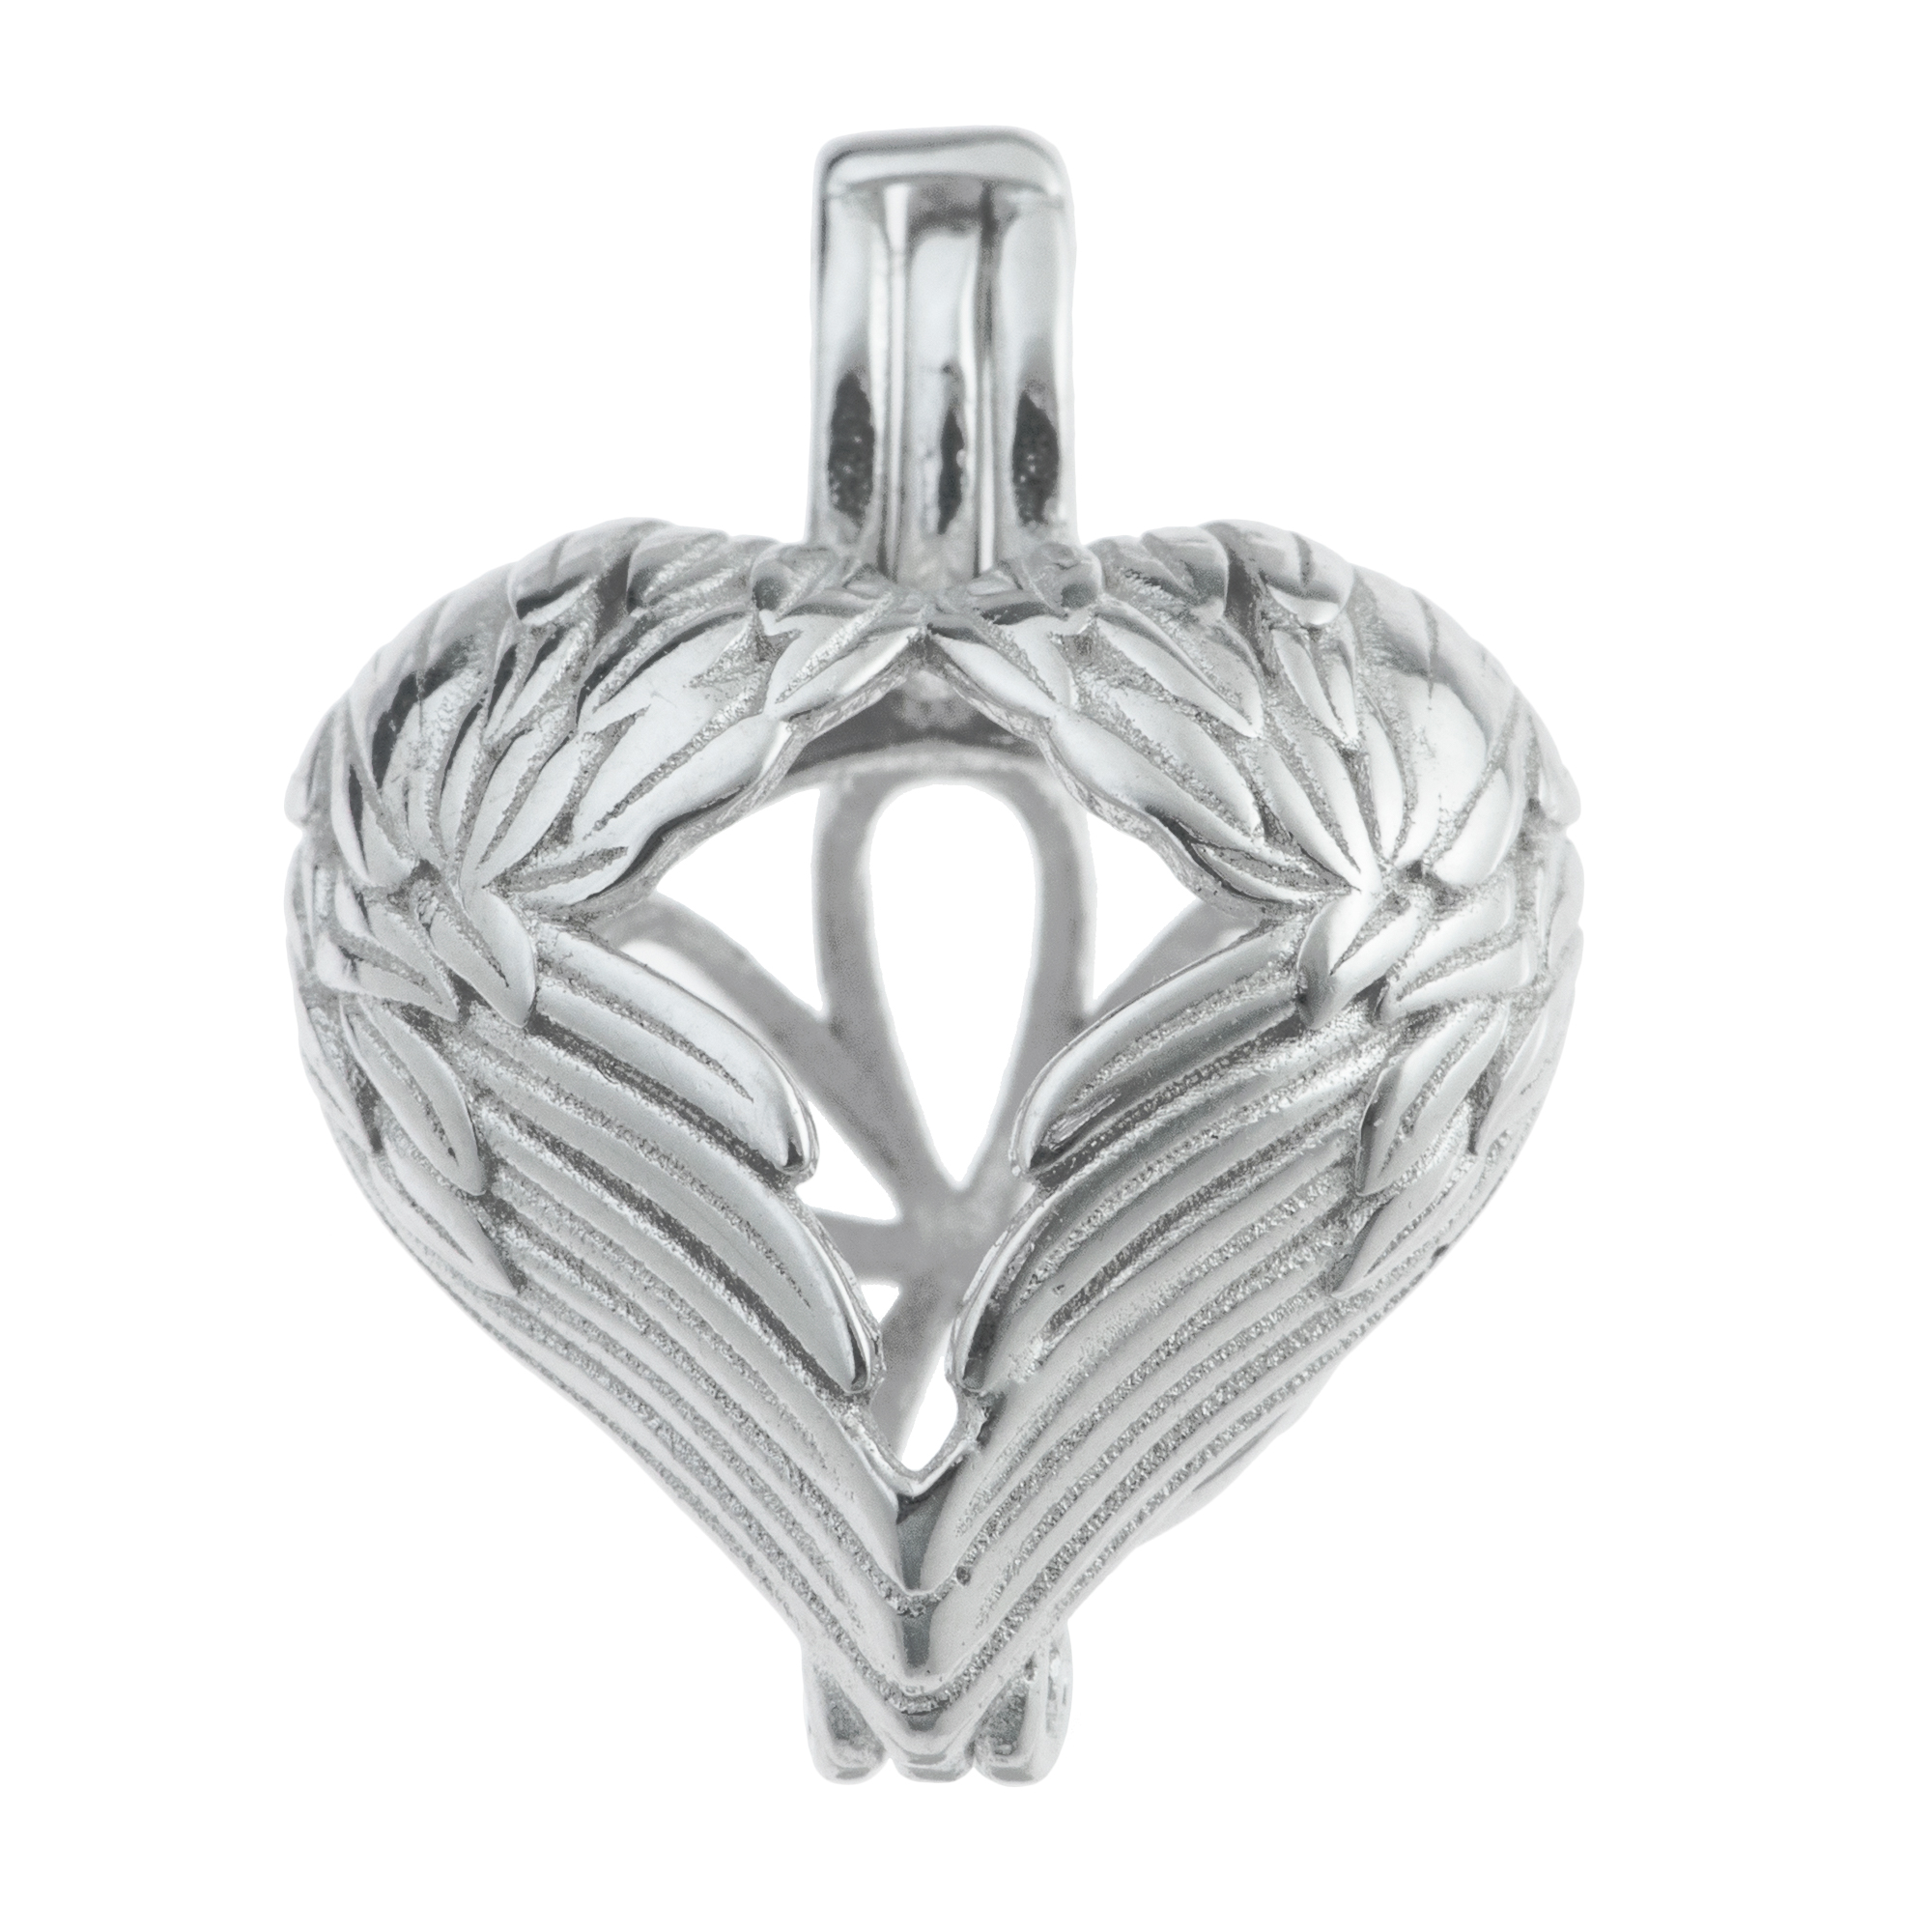 Rhodium on 925 Sterling Silver Guardian Angel Wing Heart Interchangeable Pearl Cage Bead Charm Holder Pendant